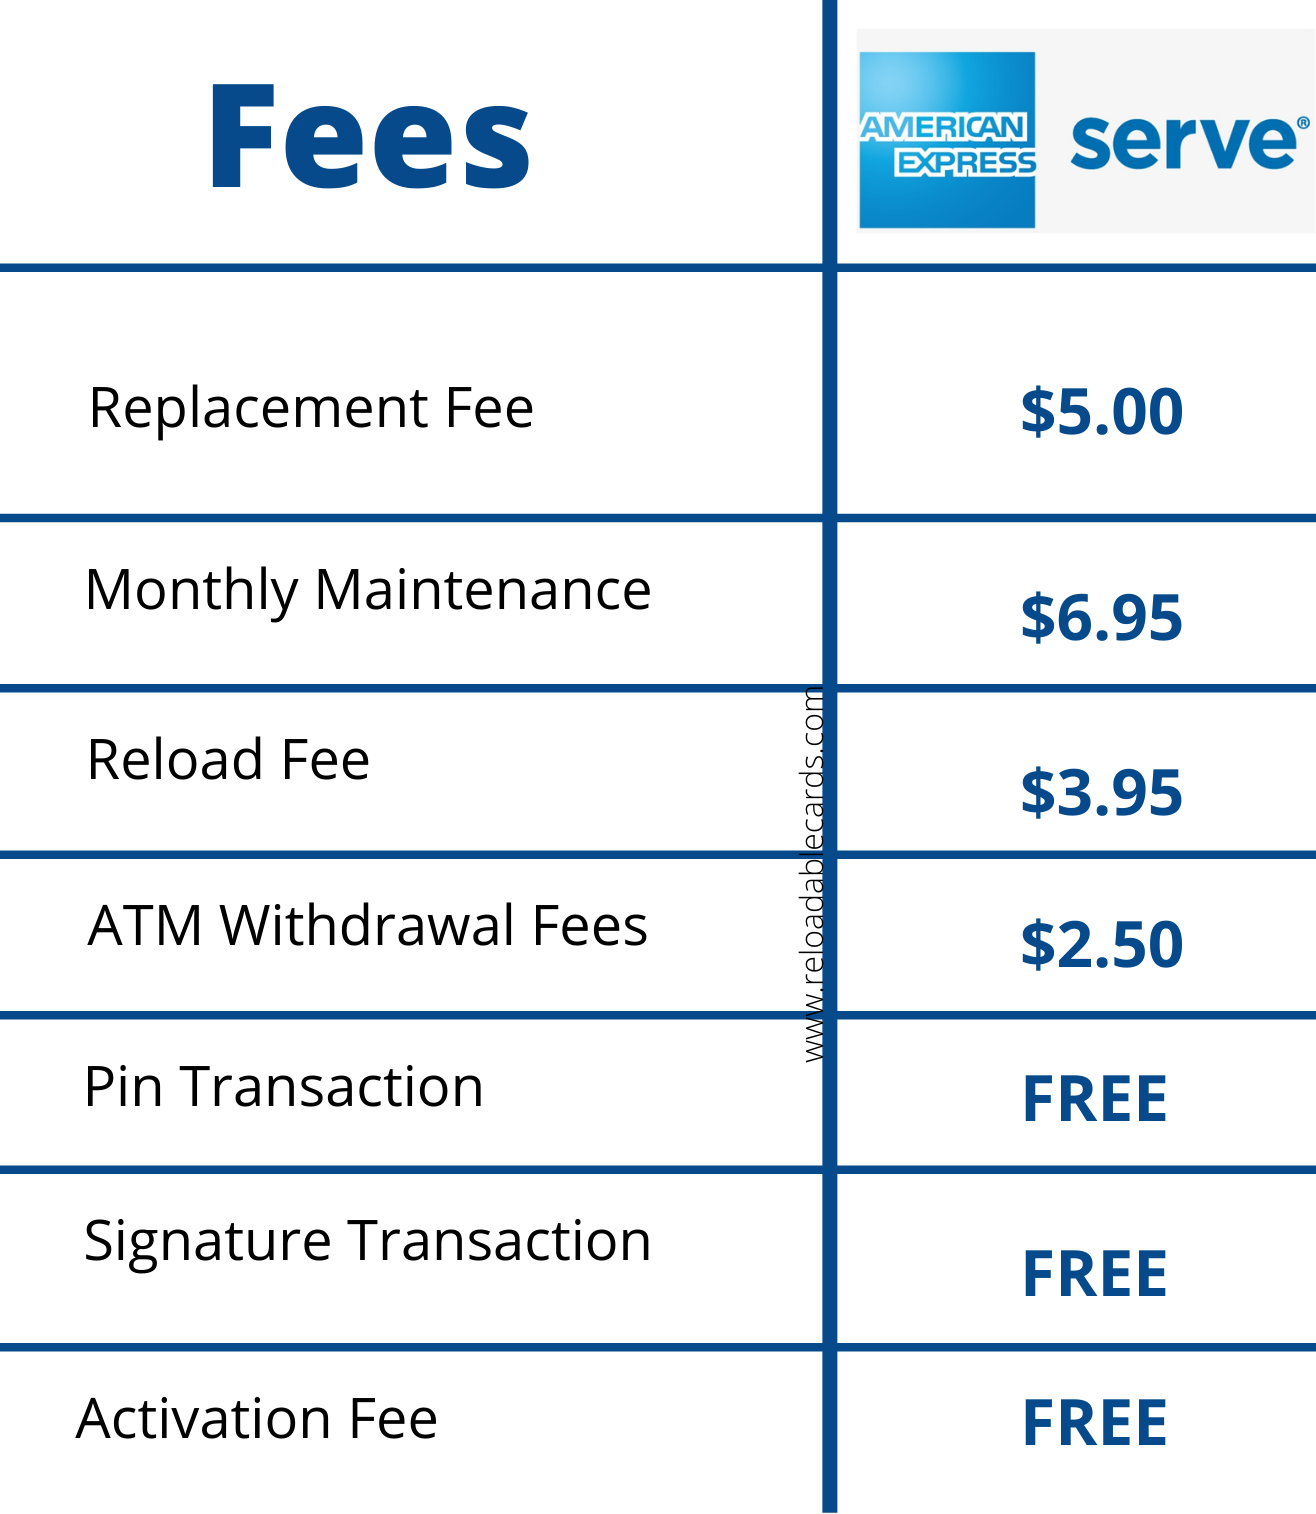 American Express Serve Fees